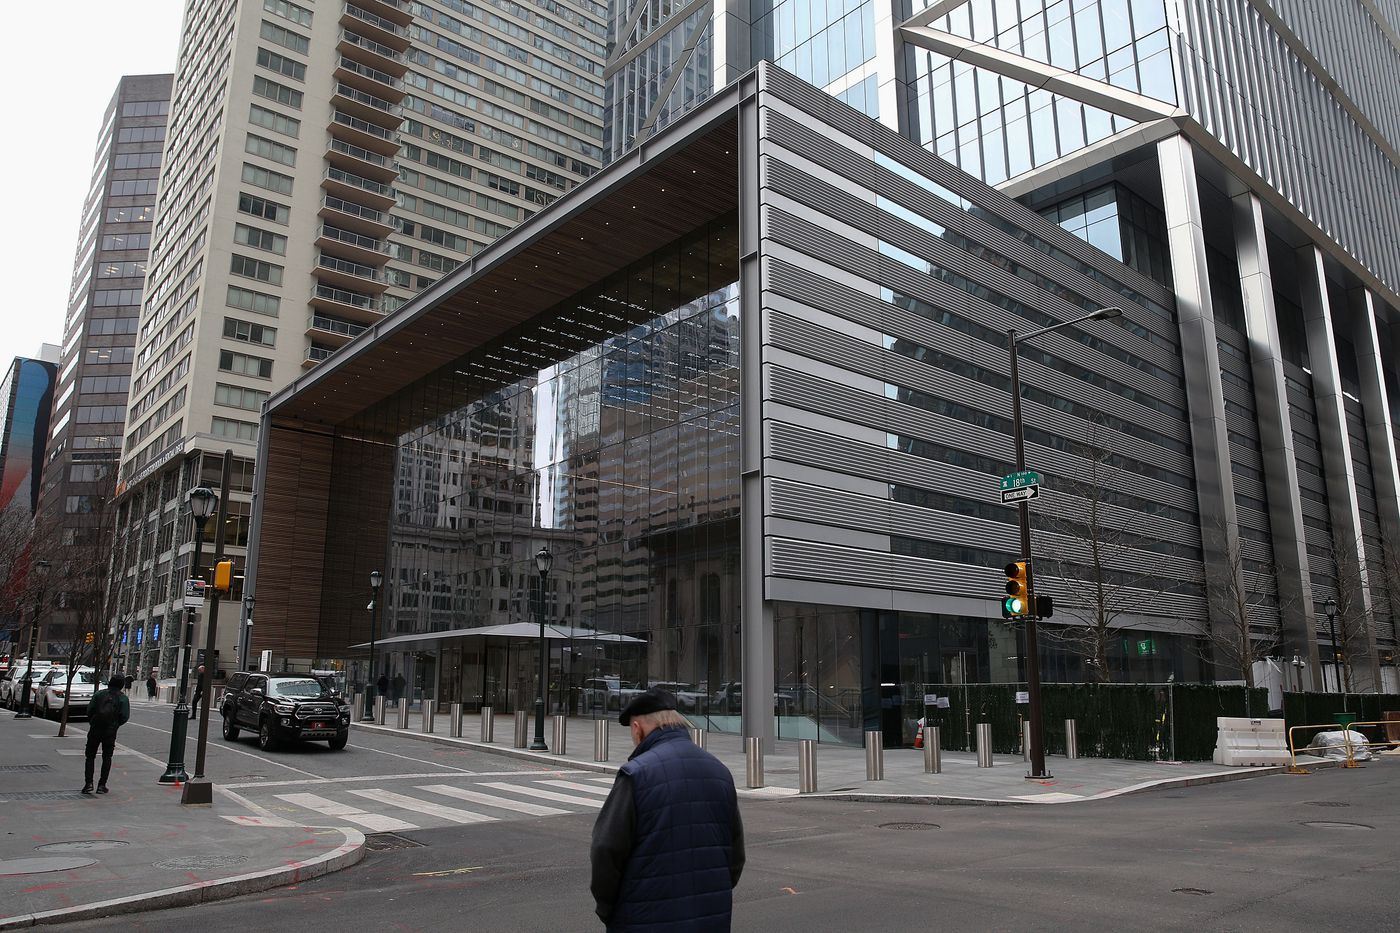 Comcast's new skyscraper syncs its architecture to the